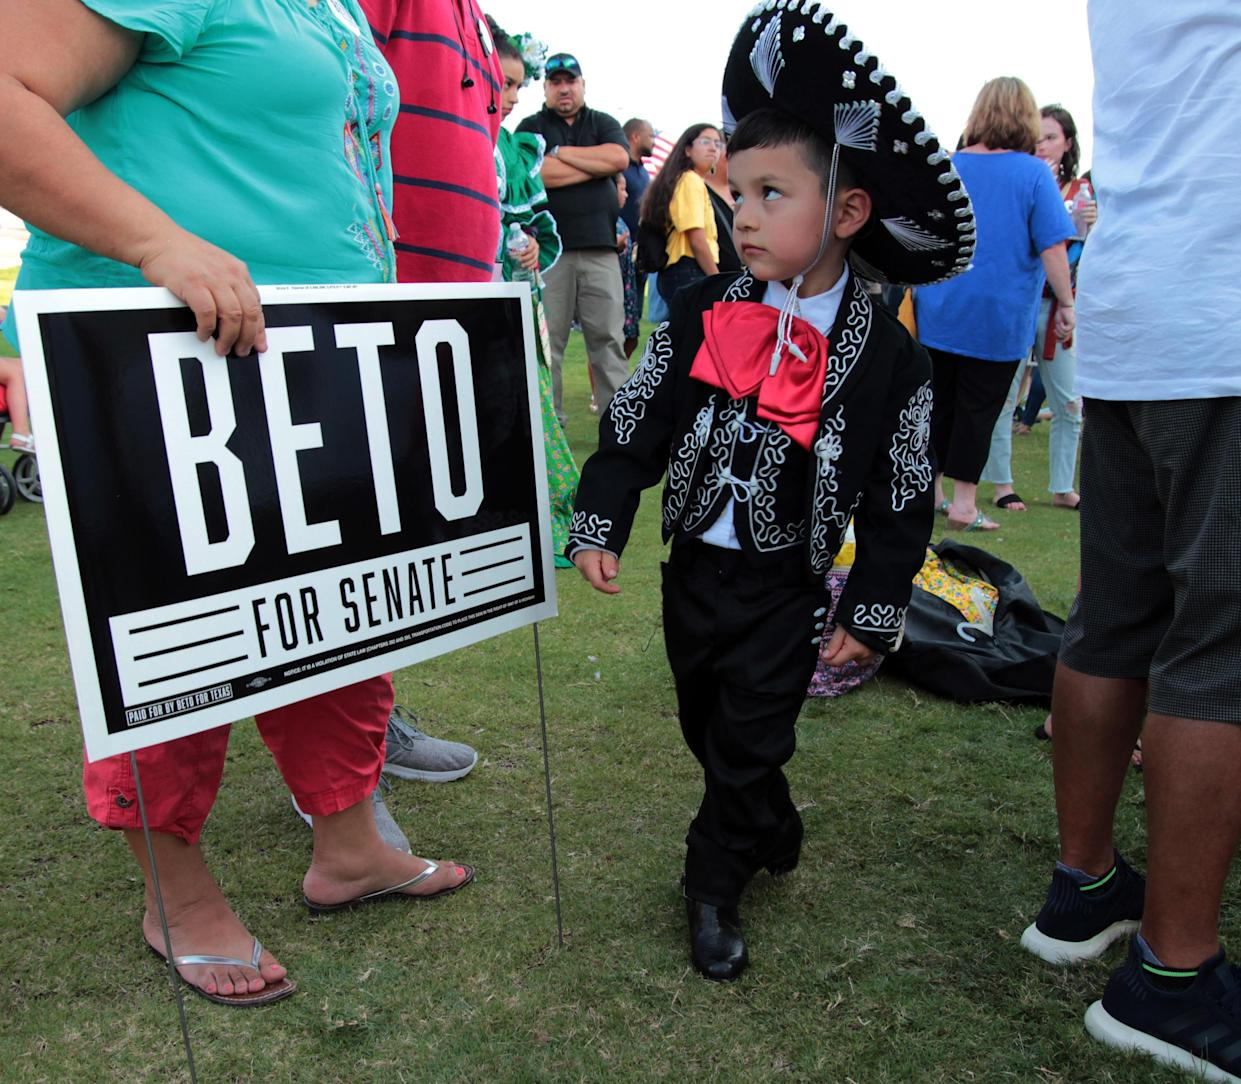 Ballet Folklorico de Fort Worth member Vicente Bonilla, 4, of Fort Worth dances even while offstage at a rally for Beto O'Rourke in August in Fort Worth, Texas. (Photo: Ian McVea/Fort Worth Star-Telegram/TNS)